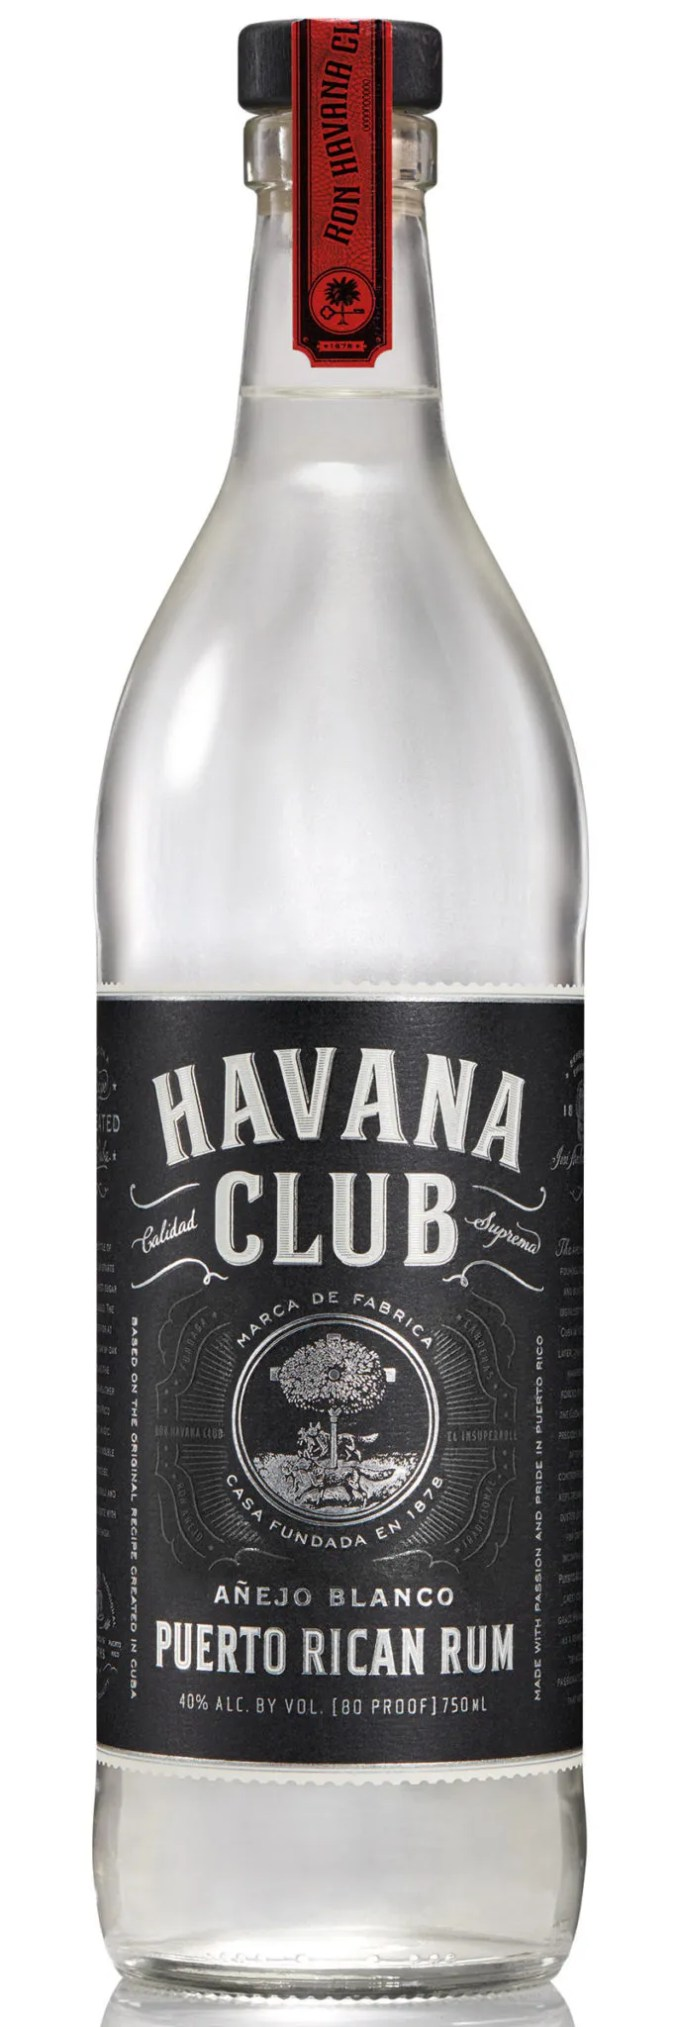 Bacardi produces Havana Club Blanco in Puerto Rico